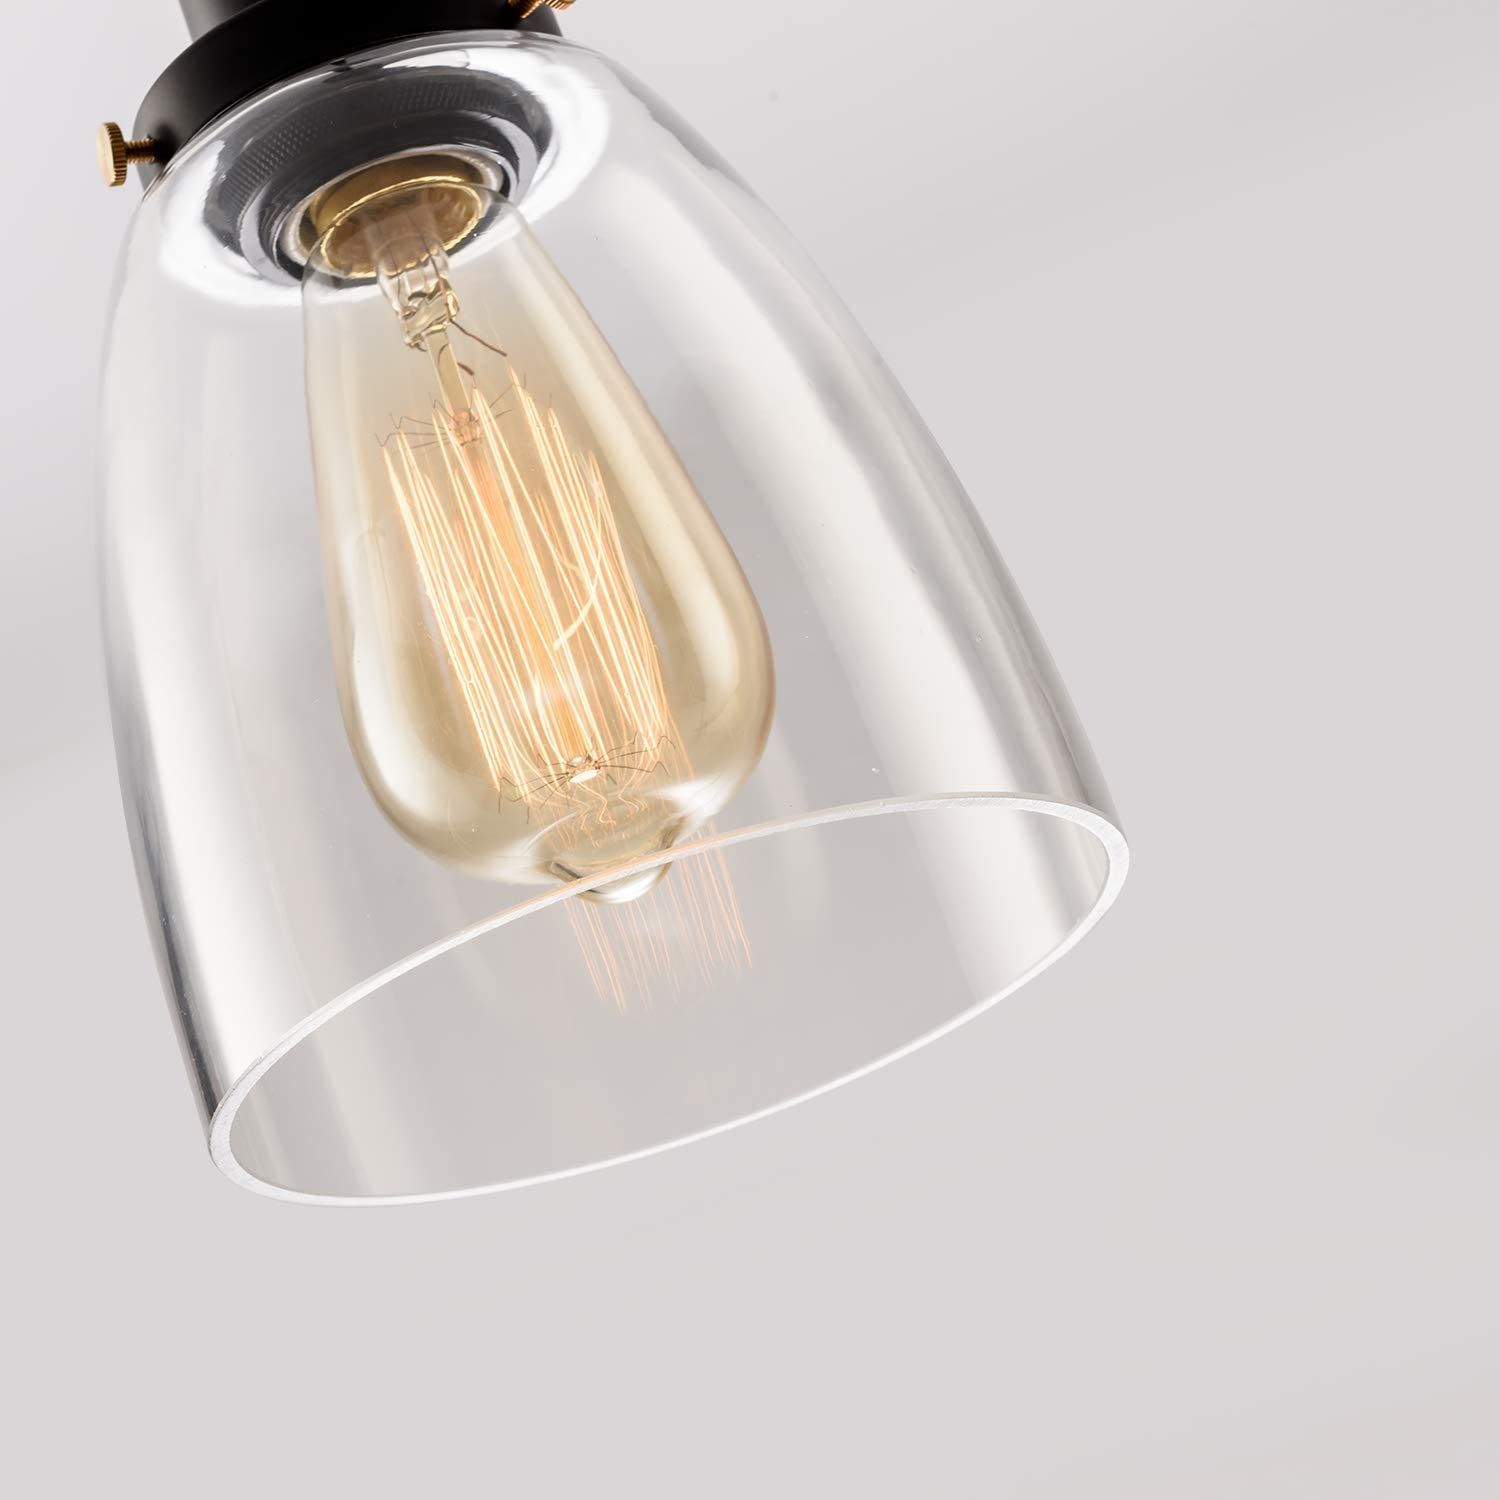 Industrial Pendant Light Clear Mini Glass Hanging 1 Lights Adjutable Nylon Core Ceramic Holder Island Lighting Fixture Indoor for Dining Kitchen Room Entryway Loft Hanging Lamp Bulb Not Included